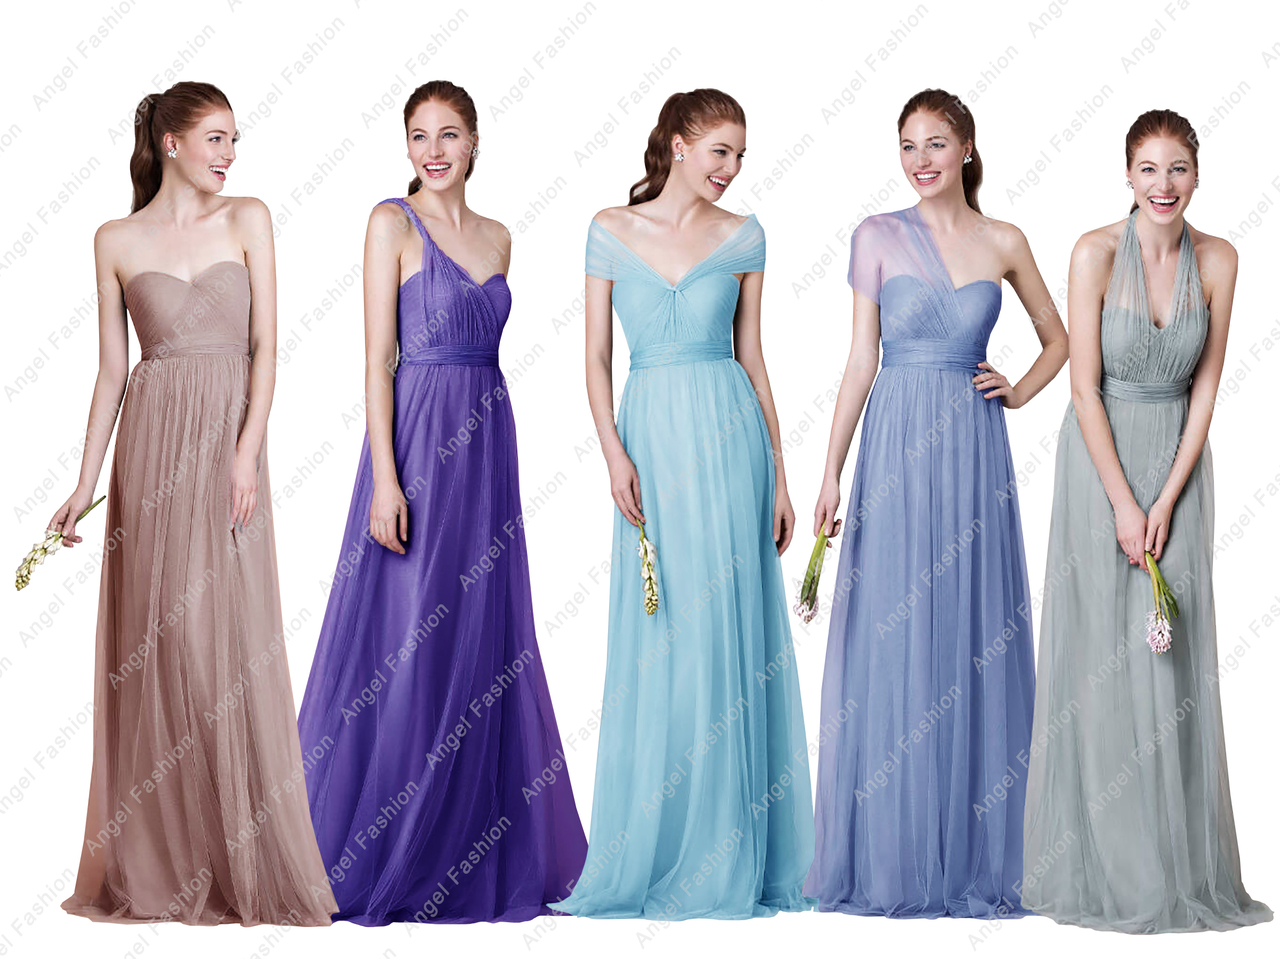 Multi Way Prom Bridesmaid Dresses UK